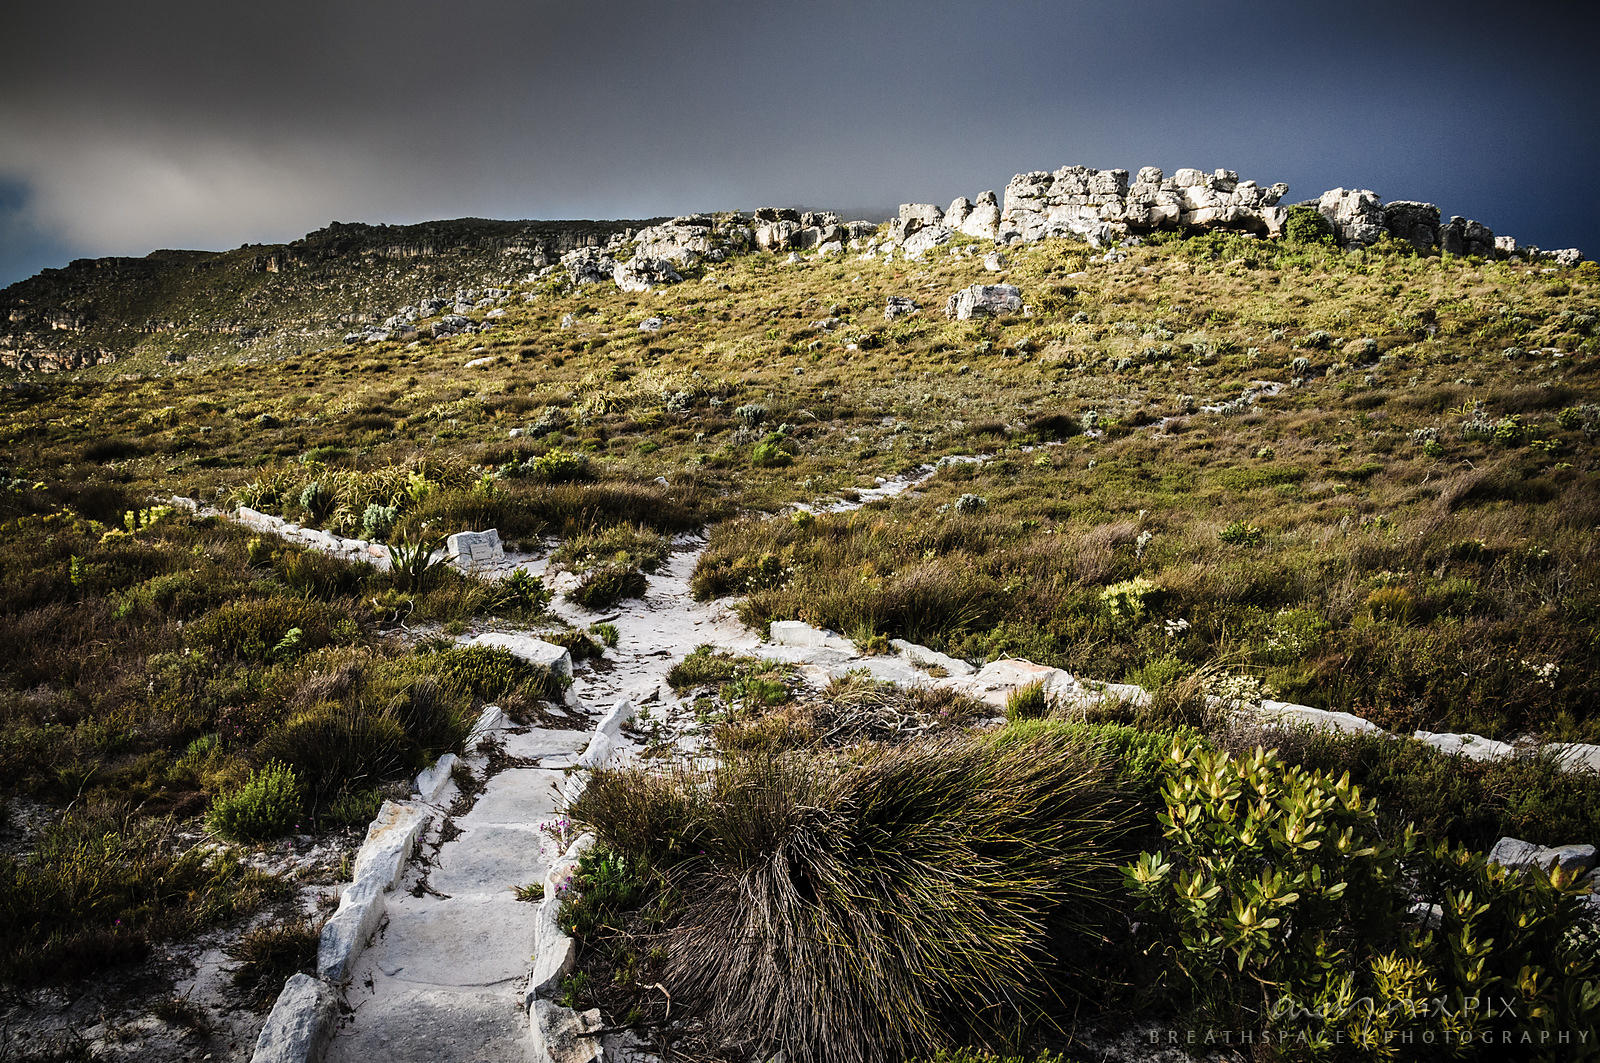 Cross roads of narrow hiking paths on mountain under dark and stormy sky